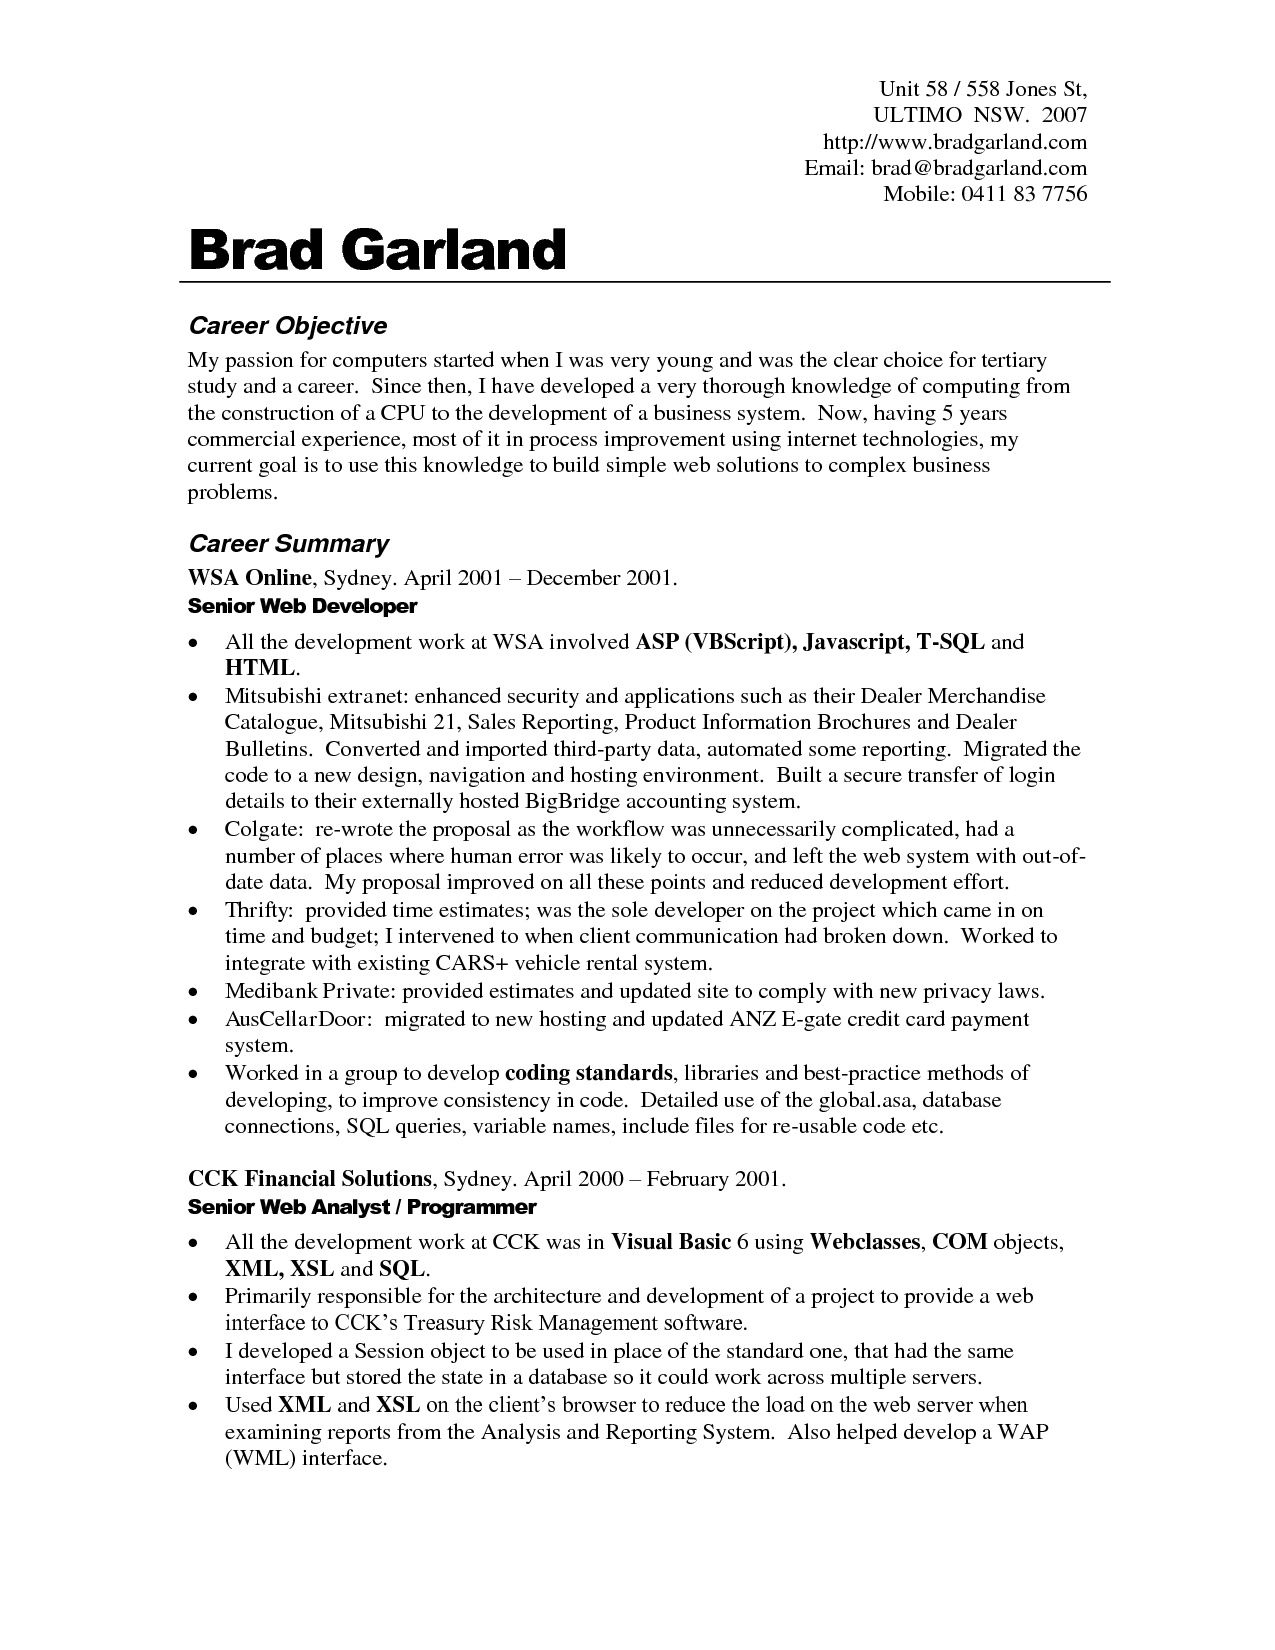 sample resume action verbs for lawyers formatting back post attorney samples entry level lawyer best free home design idea inspiration - Example Of Good Resume